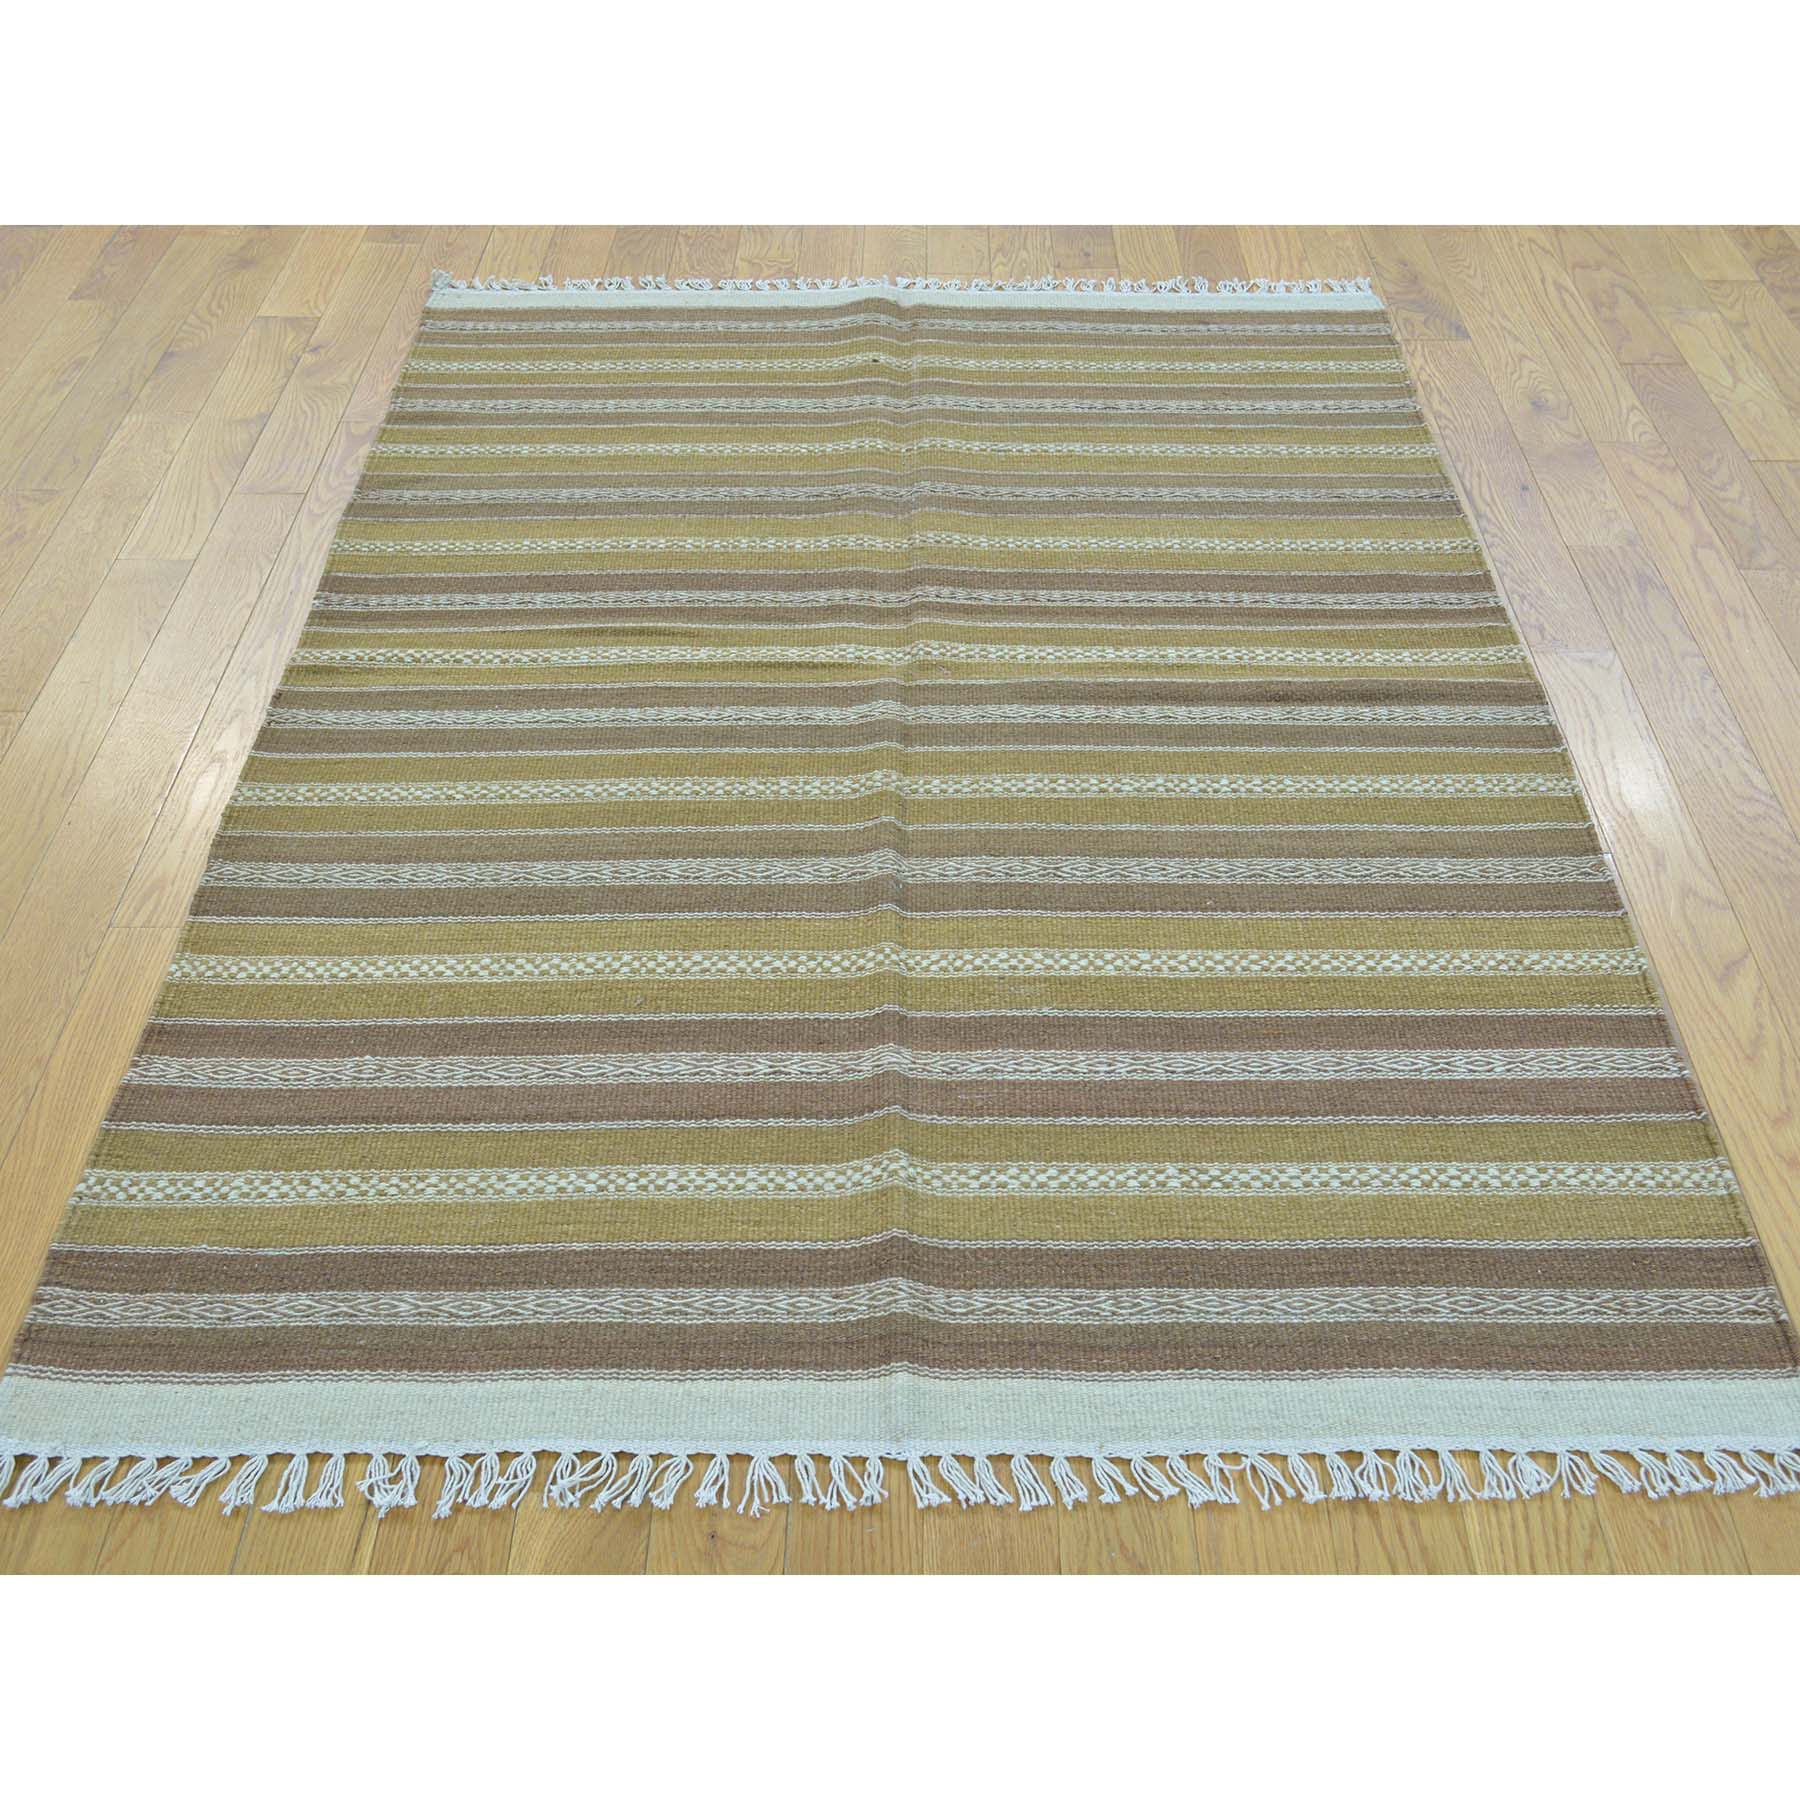 3-10 x5-10  Striped Durie Kilim Hand Woven Flat Weave Oriental Rug